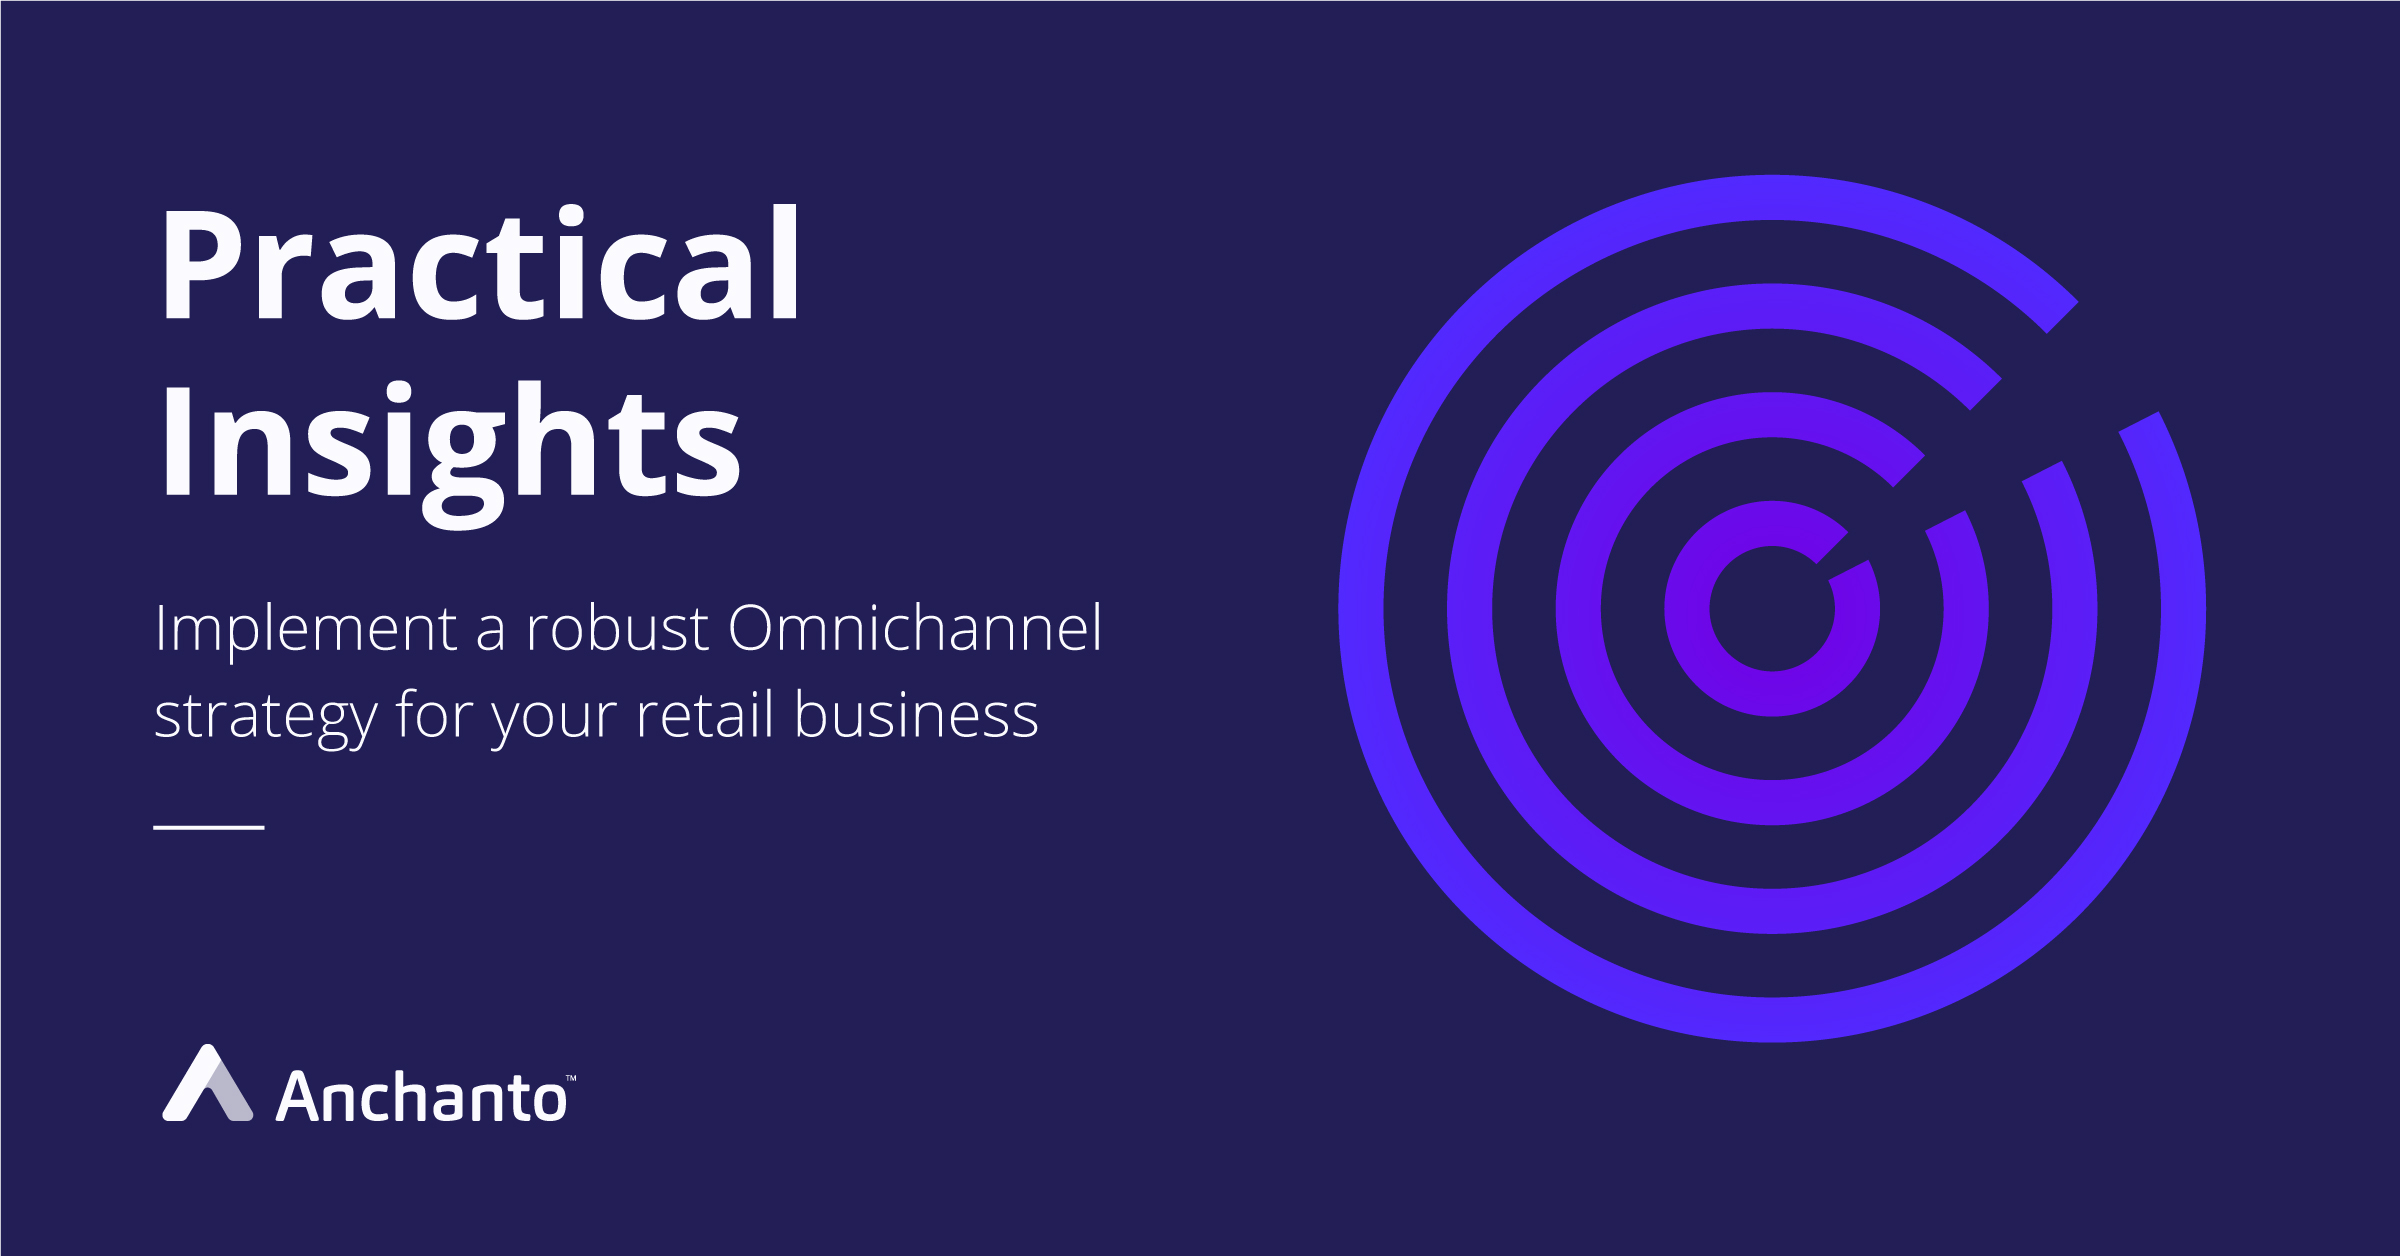 Transform your Business with Practical insights into Omnichannel Retail